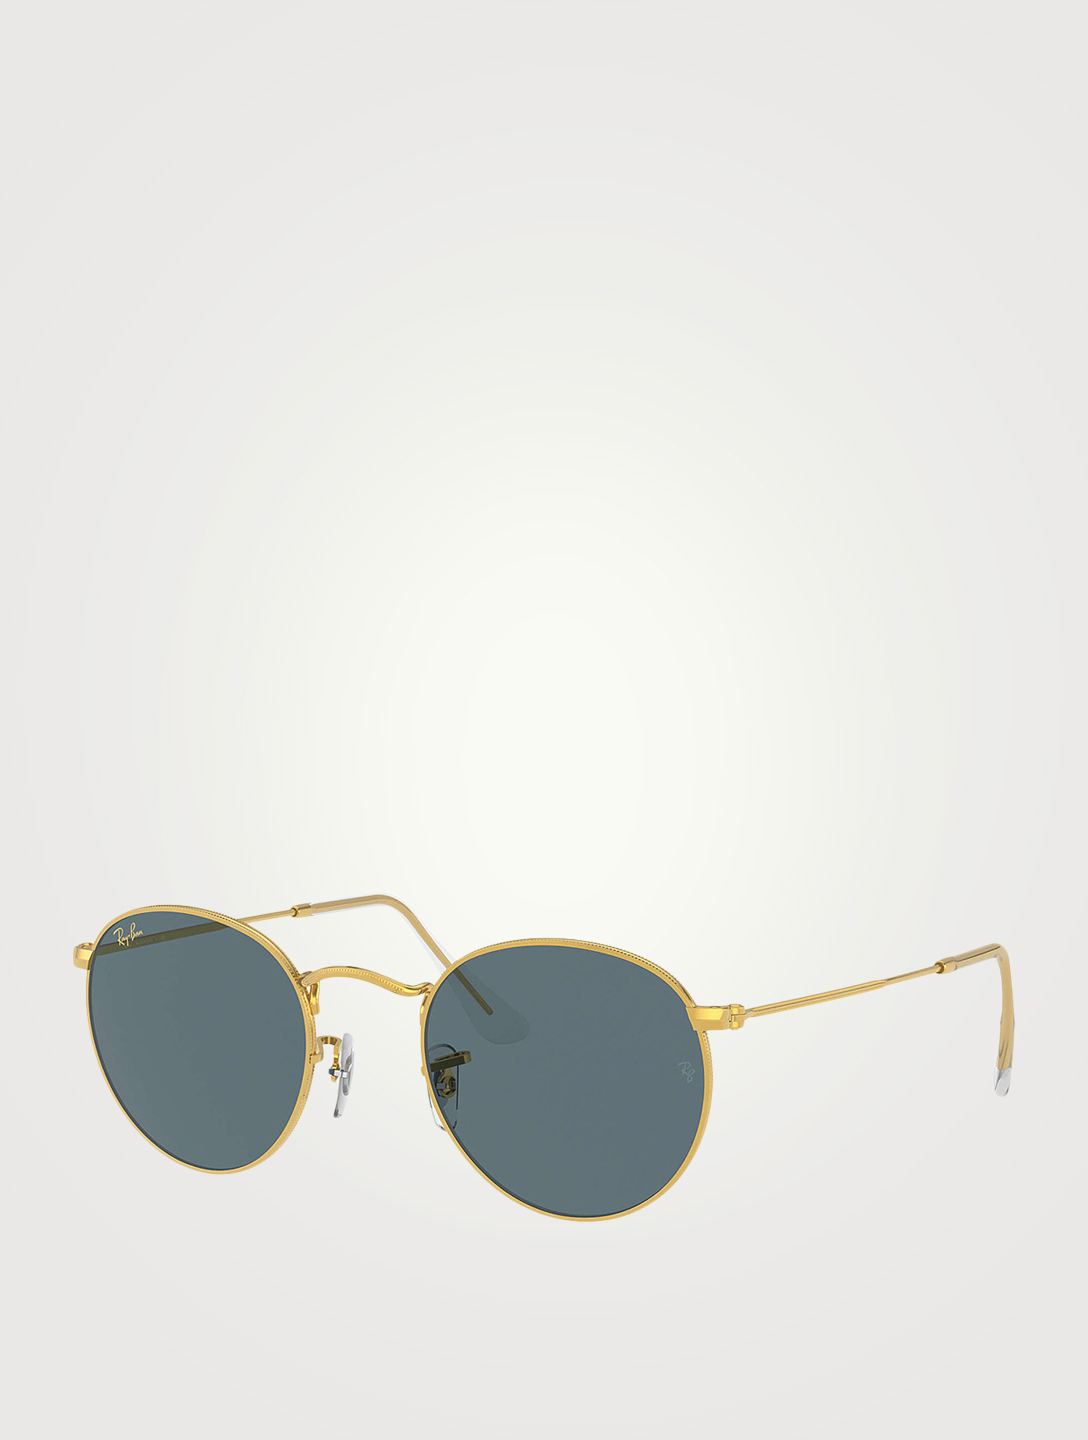 RAY-BAN RB3447 Round Metal Sunglasses Men's Metallic